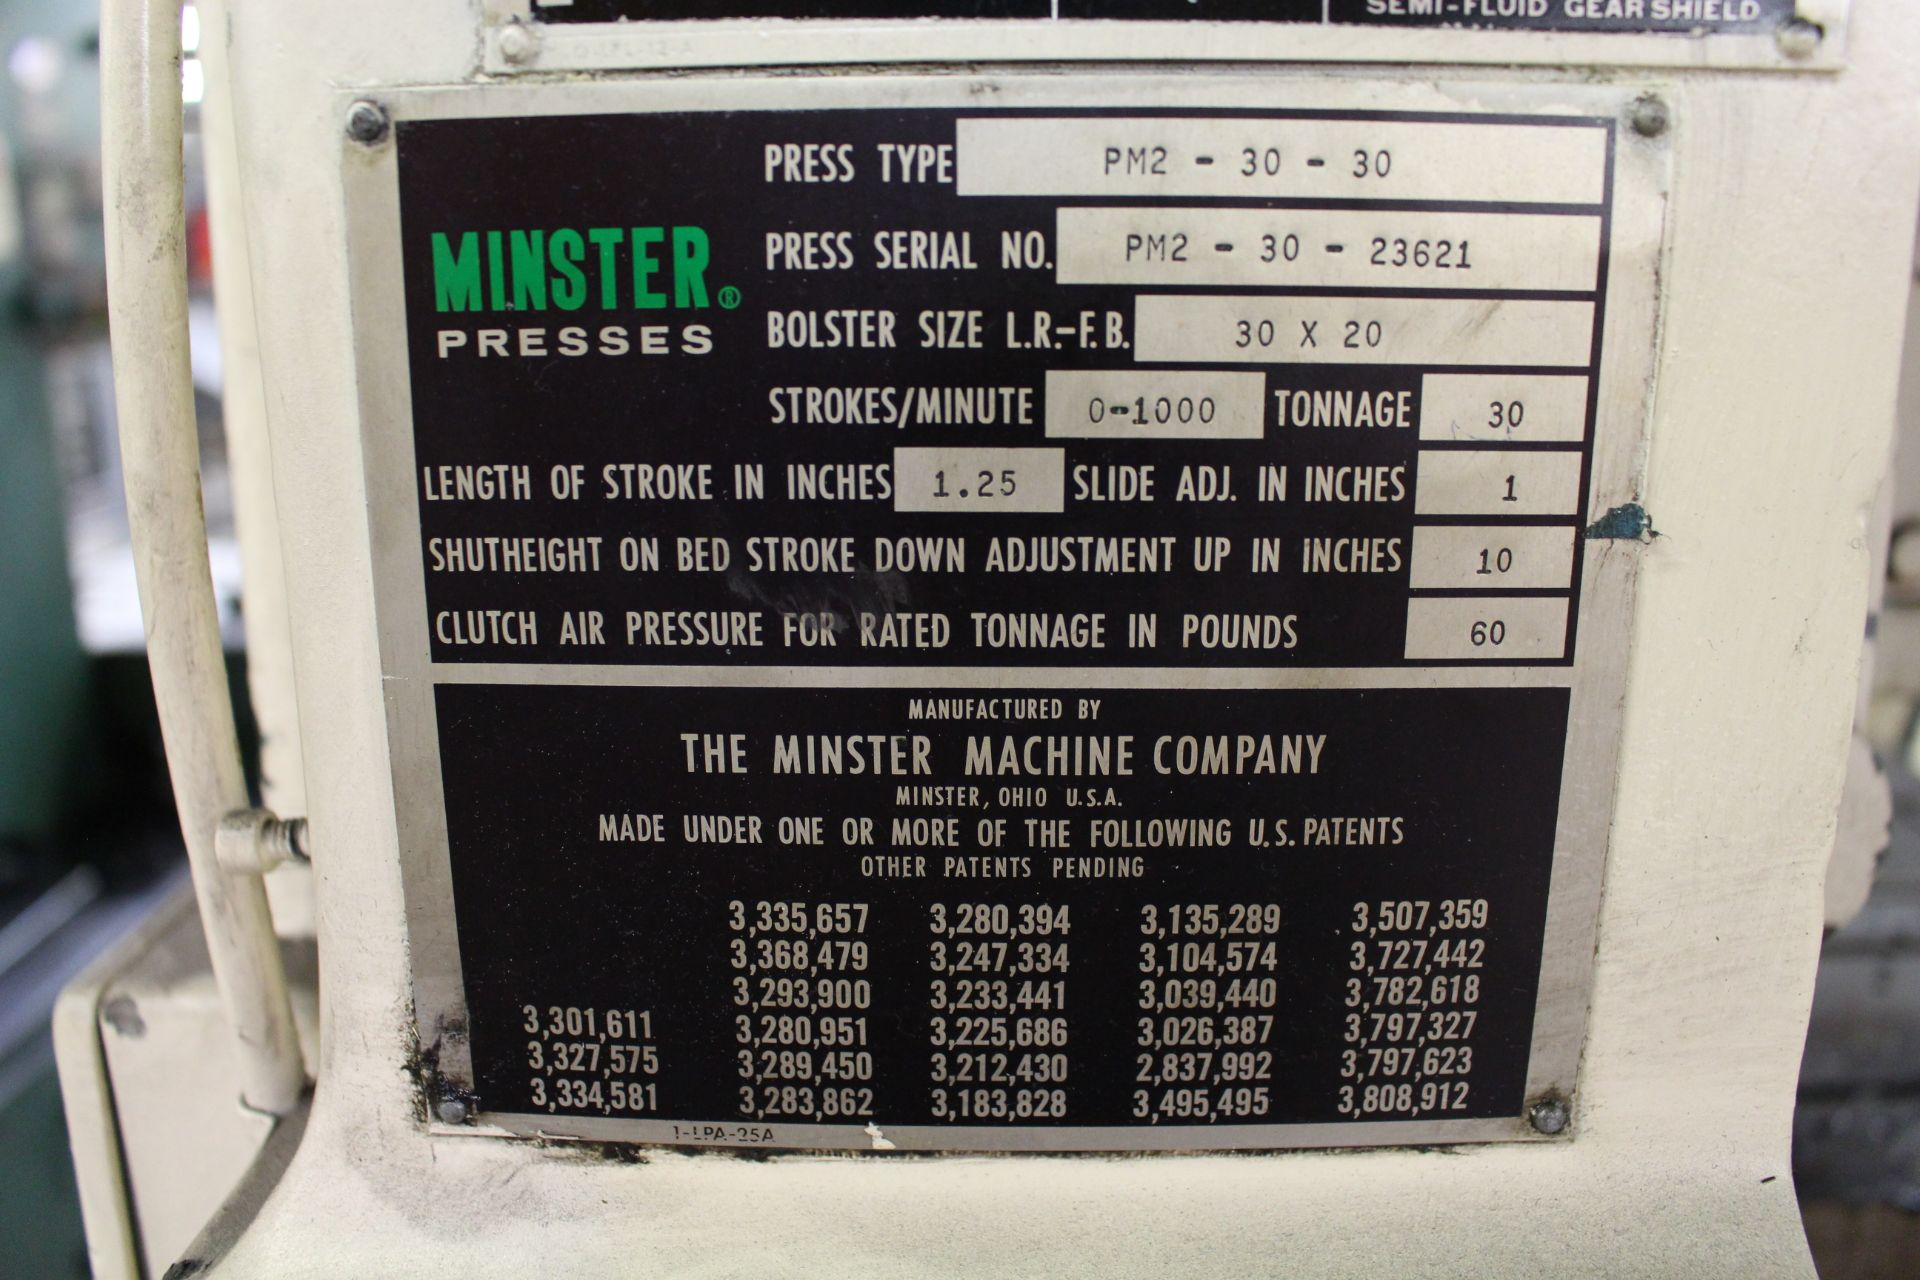 """MINSTER MODEL PM2-30-30 HIGH SPEED PUNCH PRESS, 30 TON CAPACITY, 30"""" X 20"""" BOLSTER, 0-1,000 SPM, 1- - Image 18 of 18"""